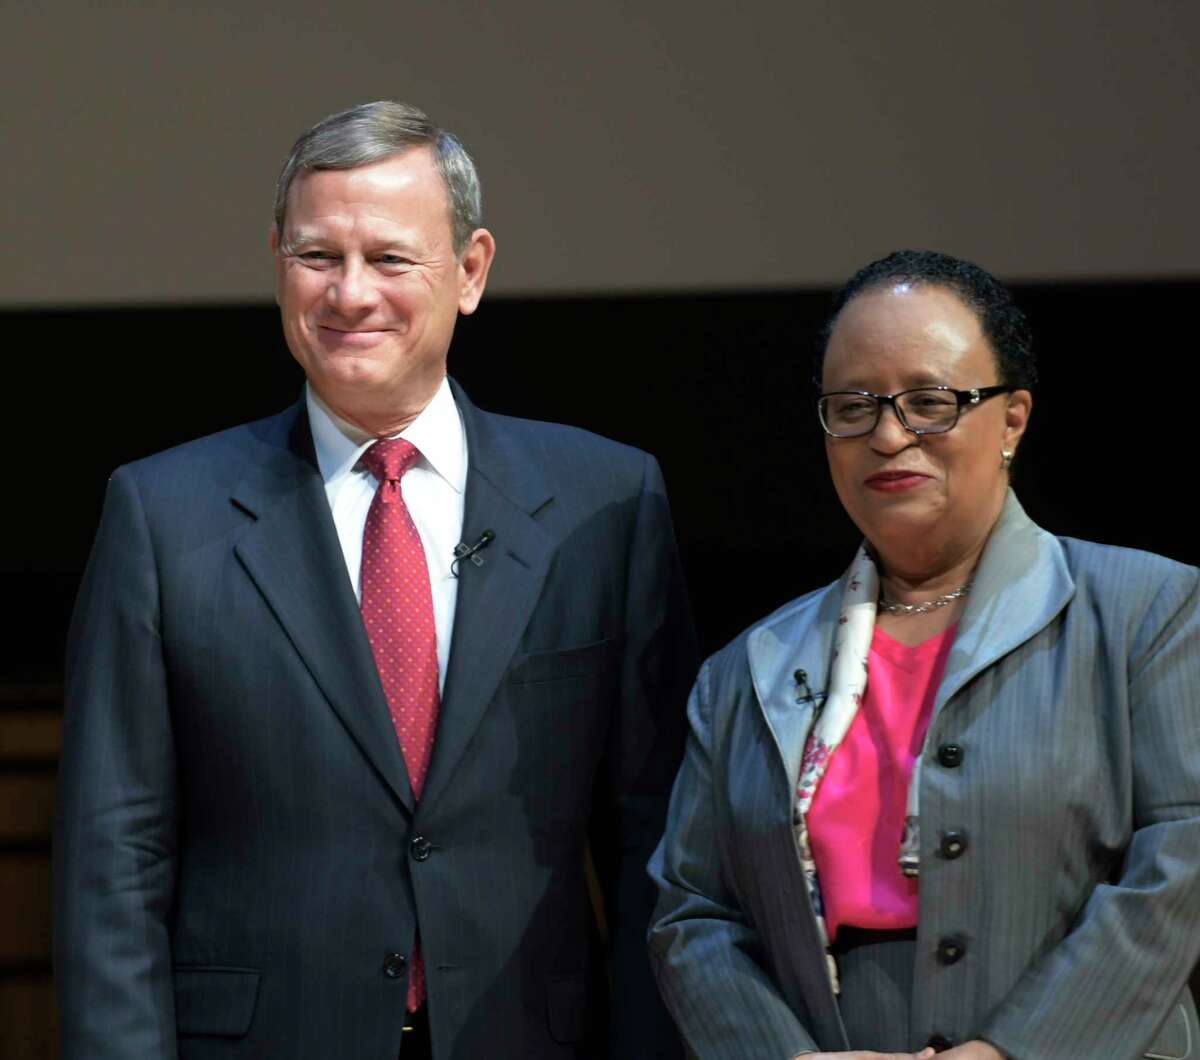 Chief Justice of the United States John Roberts, left, stands with Rensselaer Polytechnic Institute president Shirley Ann Jackson before their Q ad A on Tuesday, April 11, 2017, at RPI in Troy, N.Y. (Skip Dickstein/Times Union)